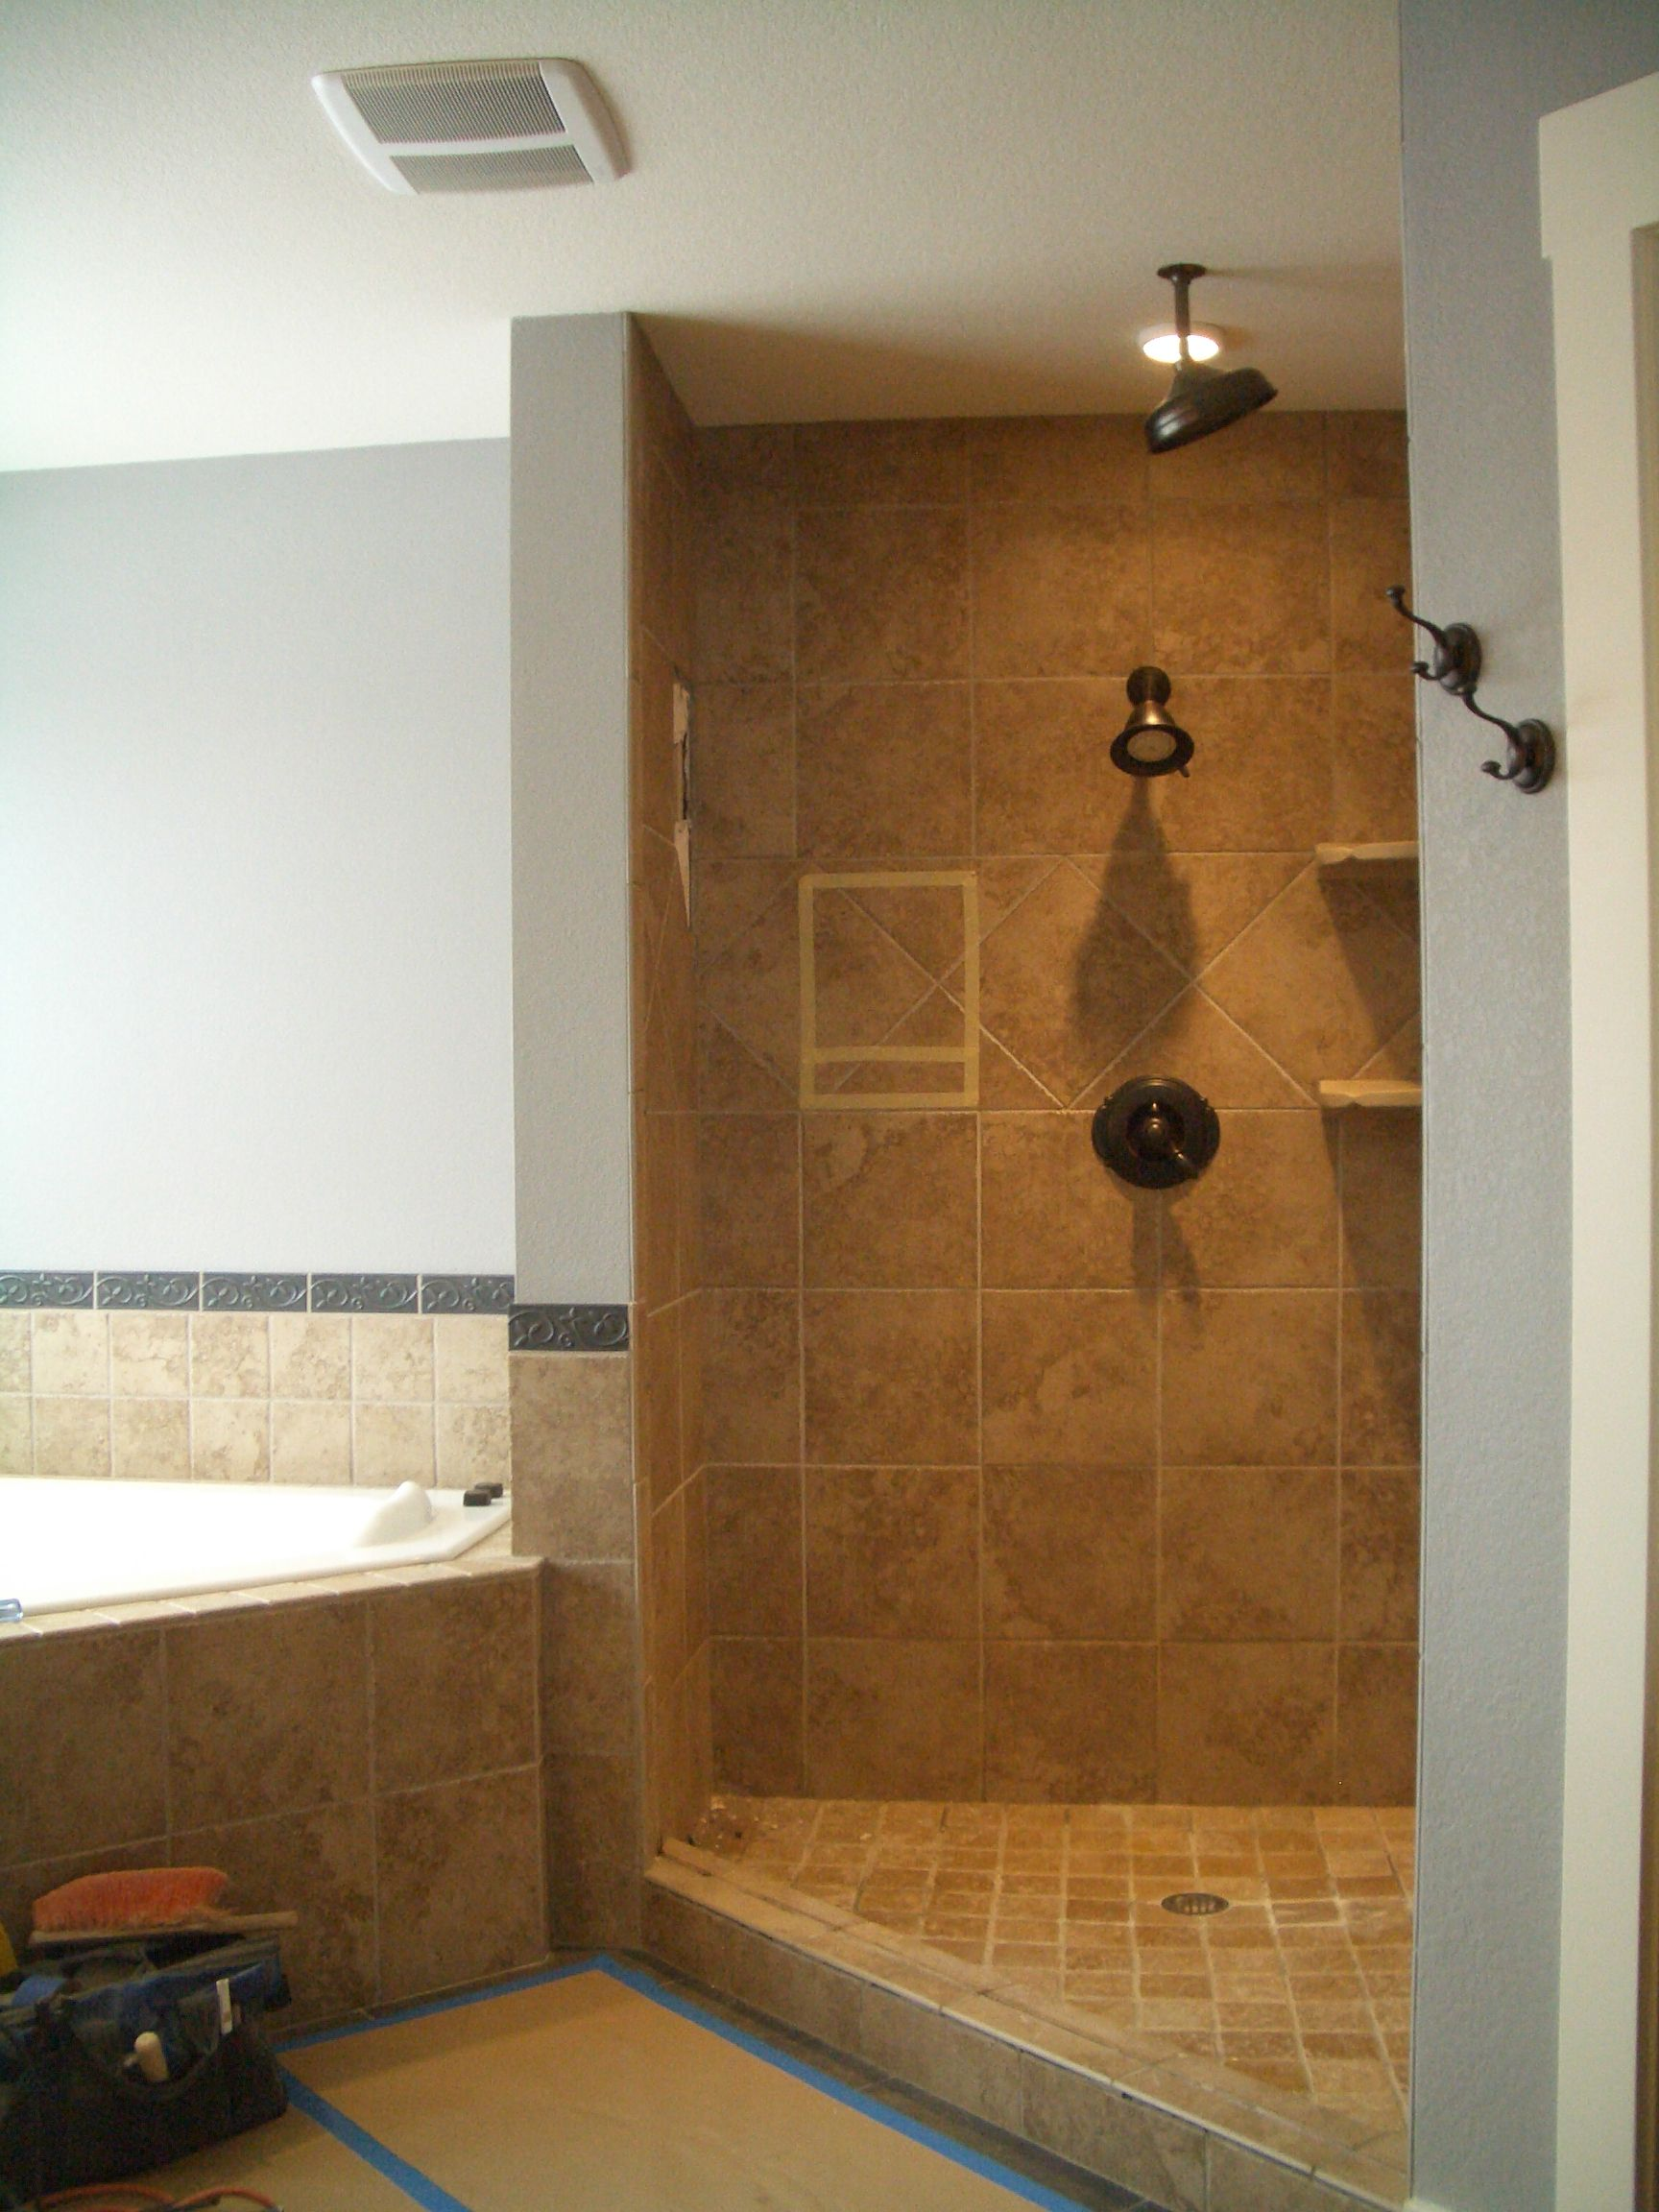 Remodel Bathroom Shower Cost bathroom shower remodel cost | ideas | pinterest | bathroom shower